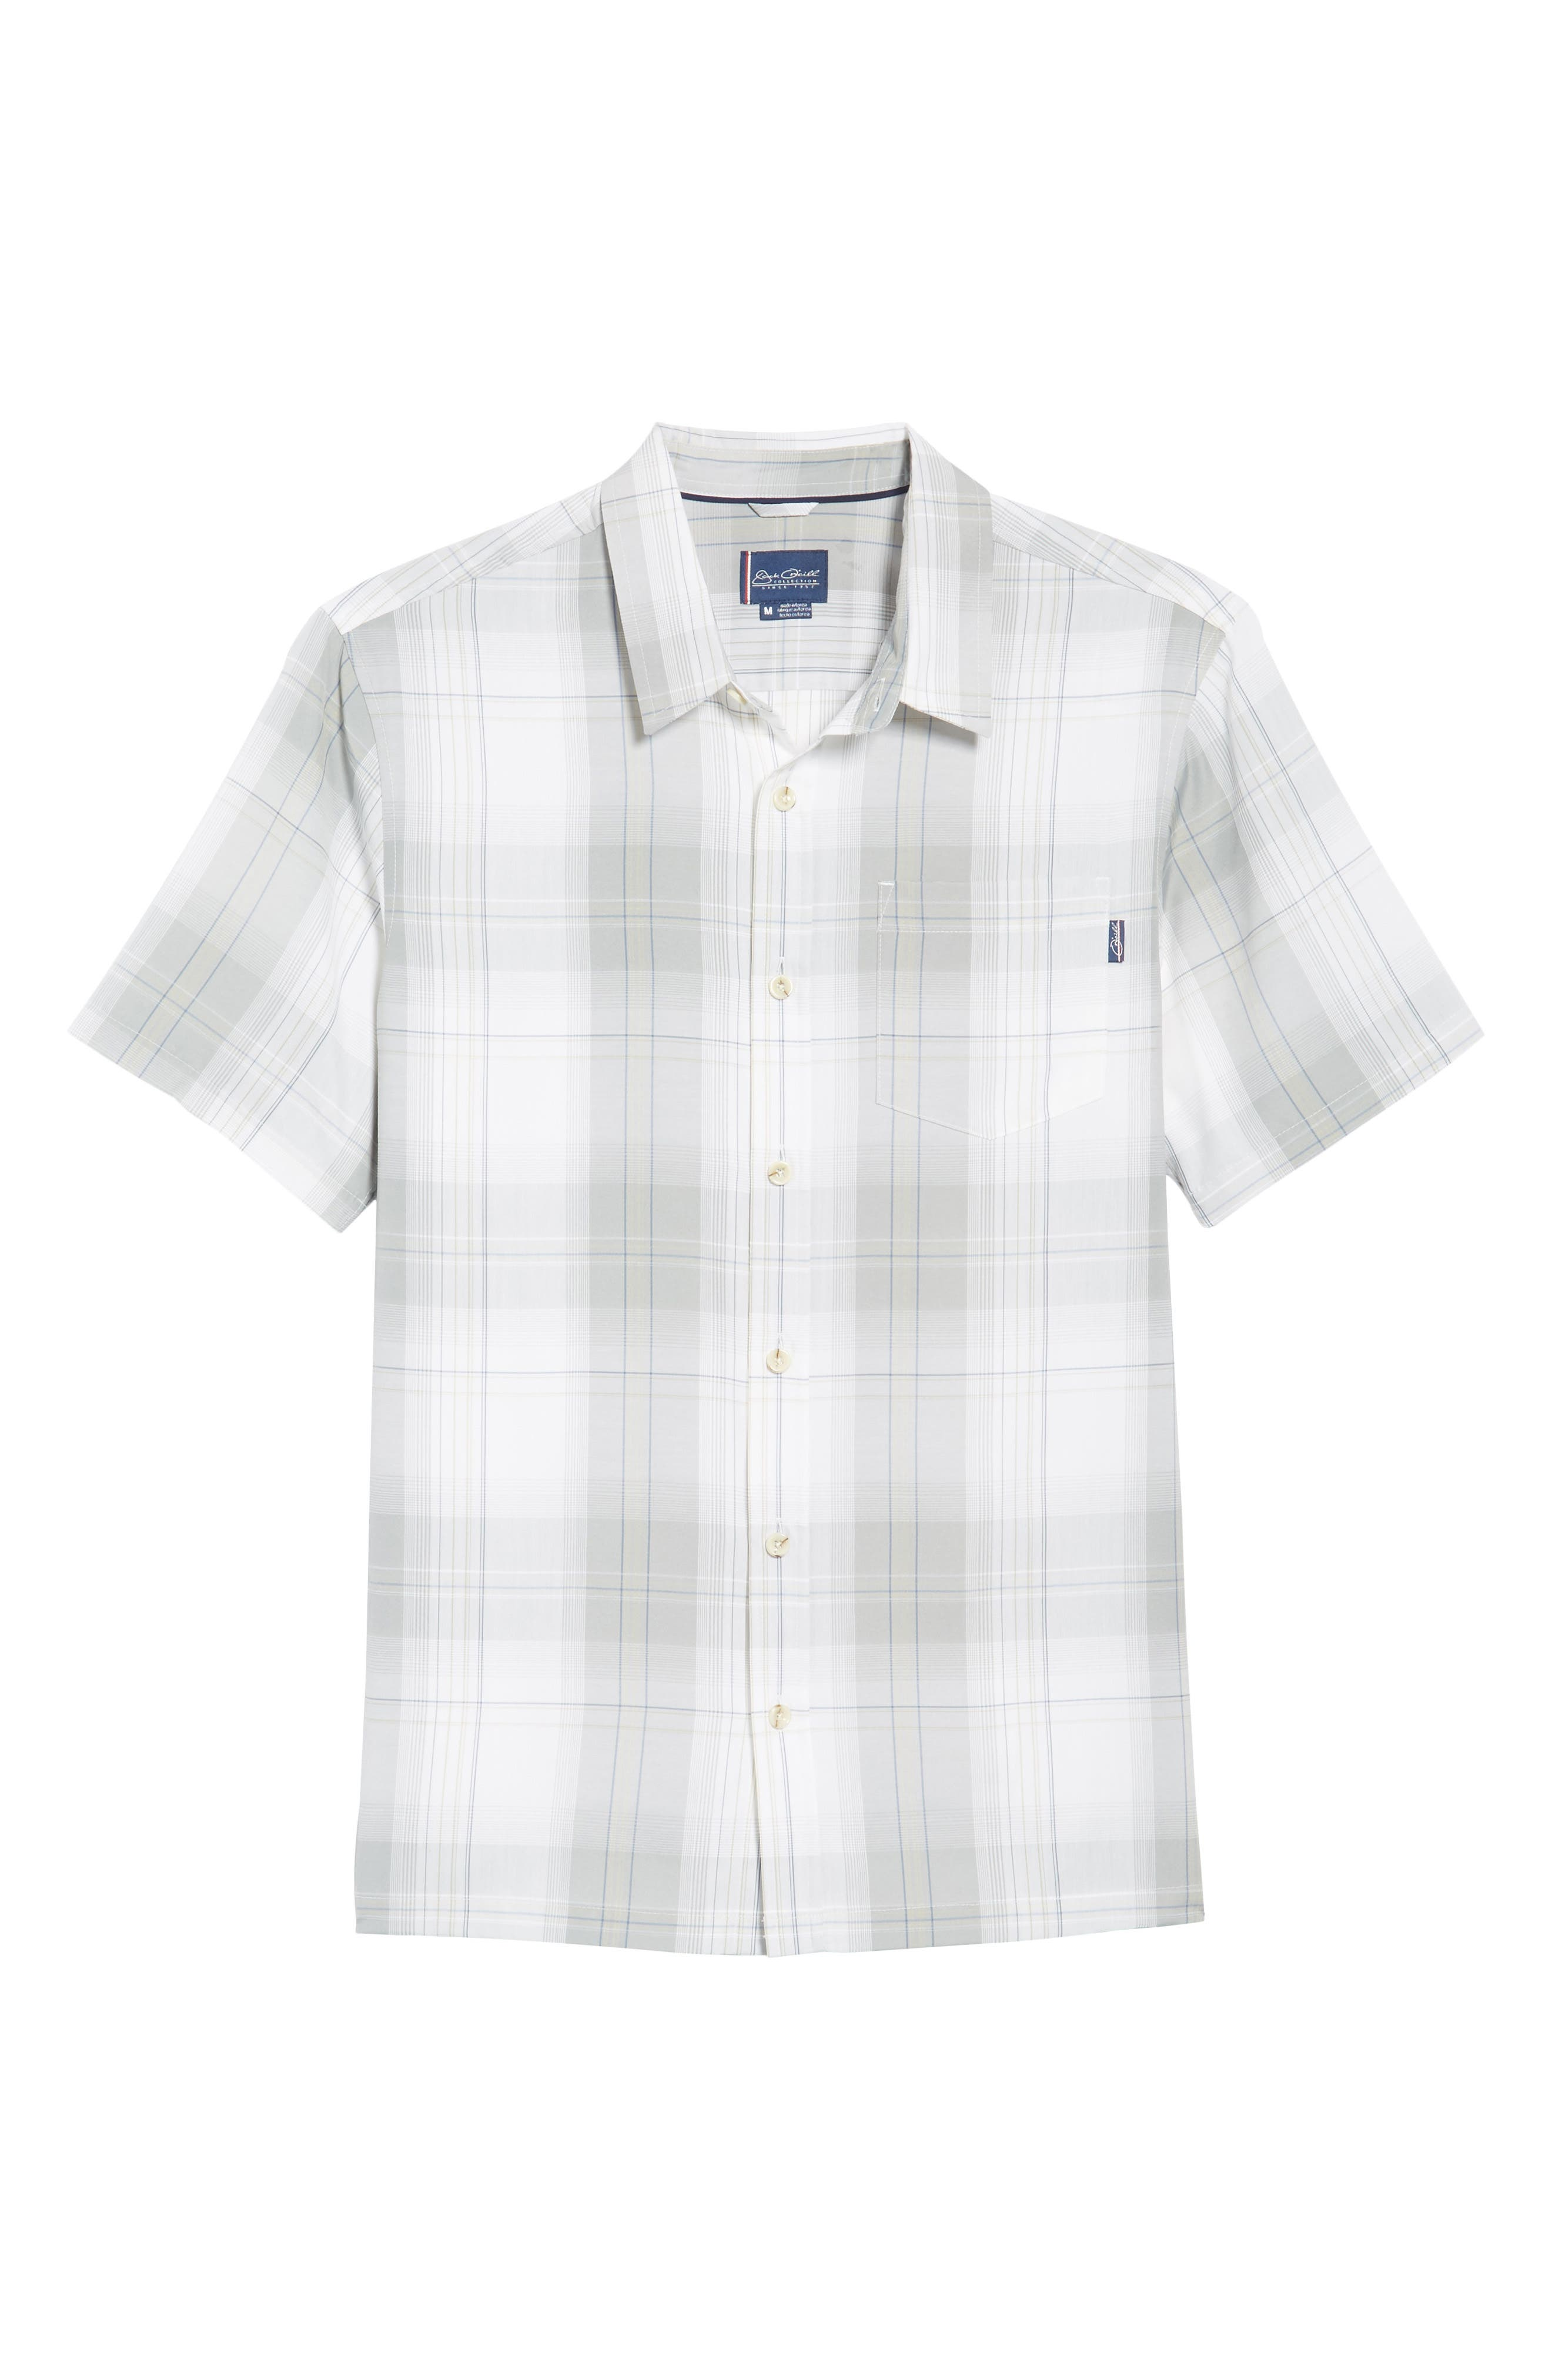 Outerbanks Plaid Sport Shirt,                             Alternate thumbnail 6, color,                             Light Grey